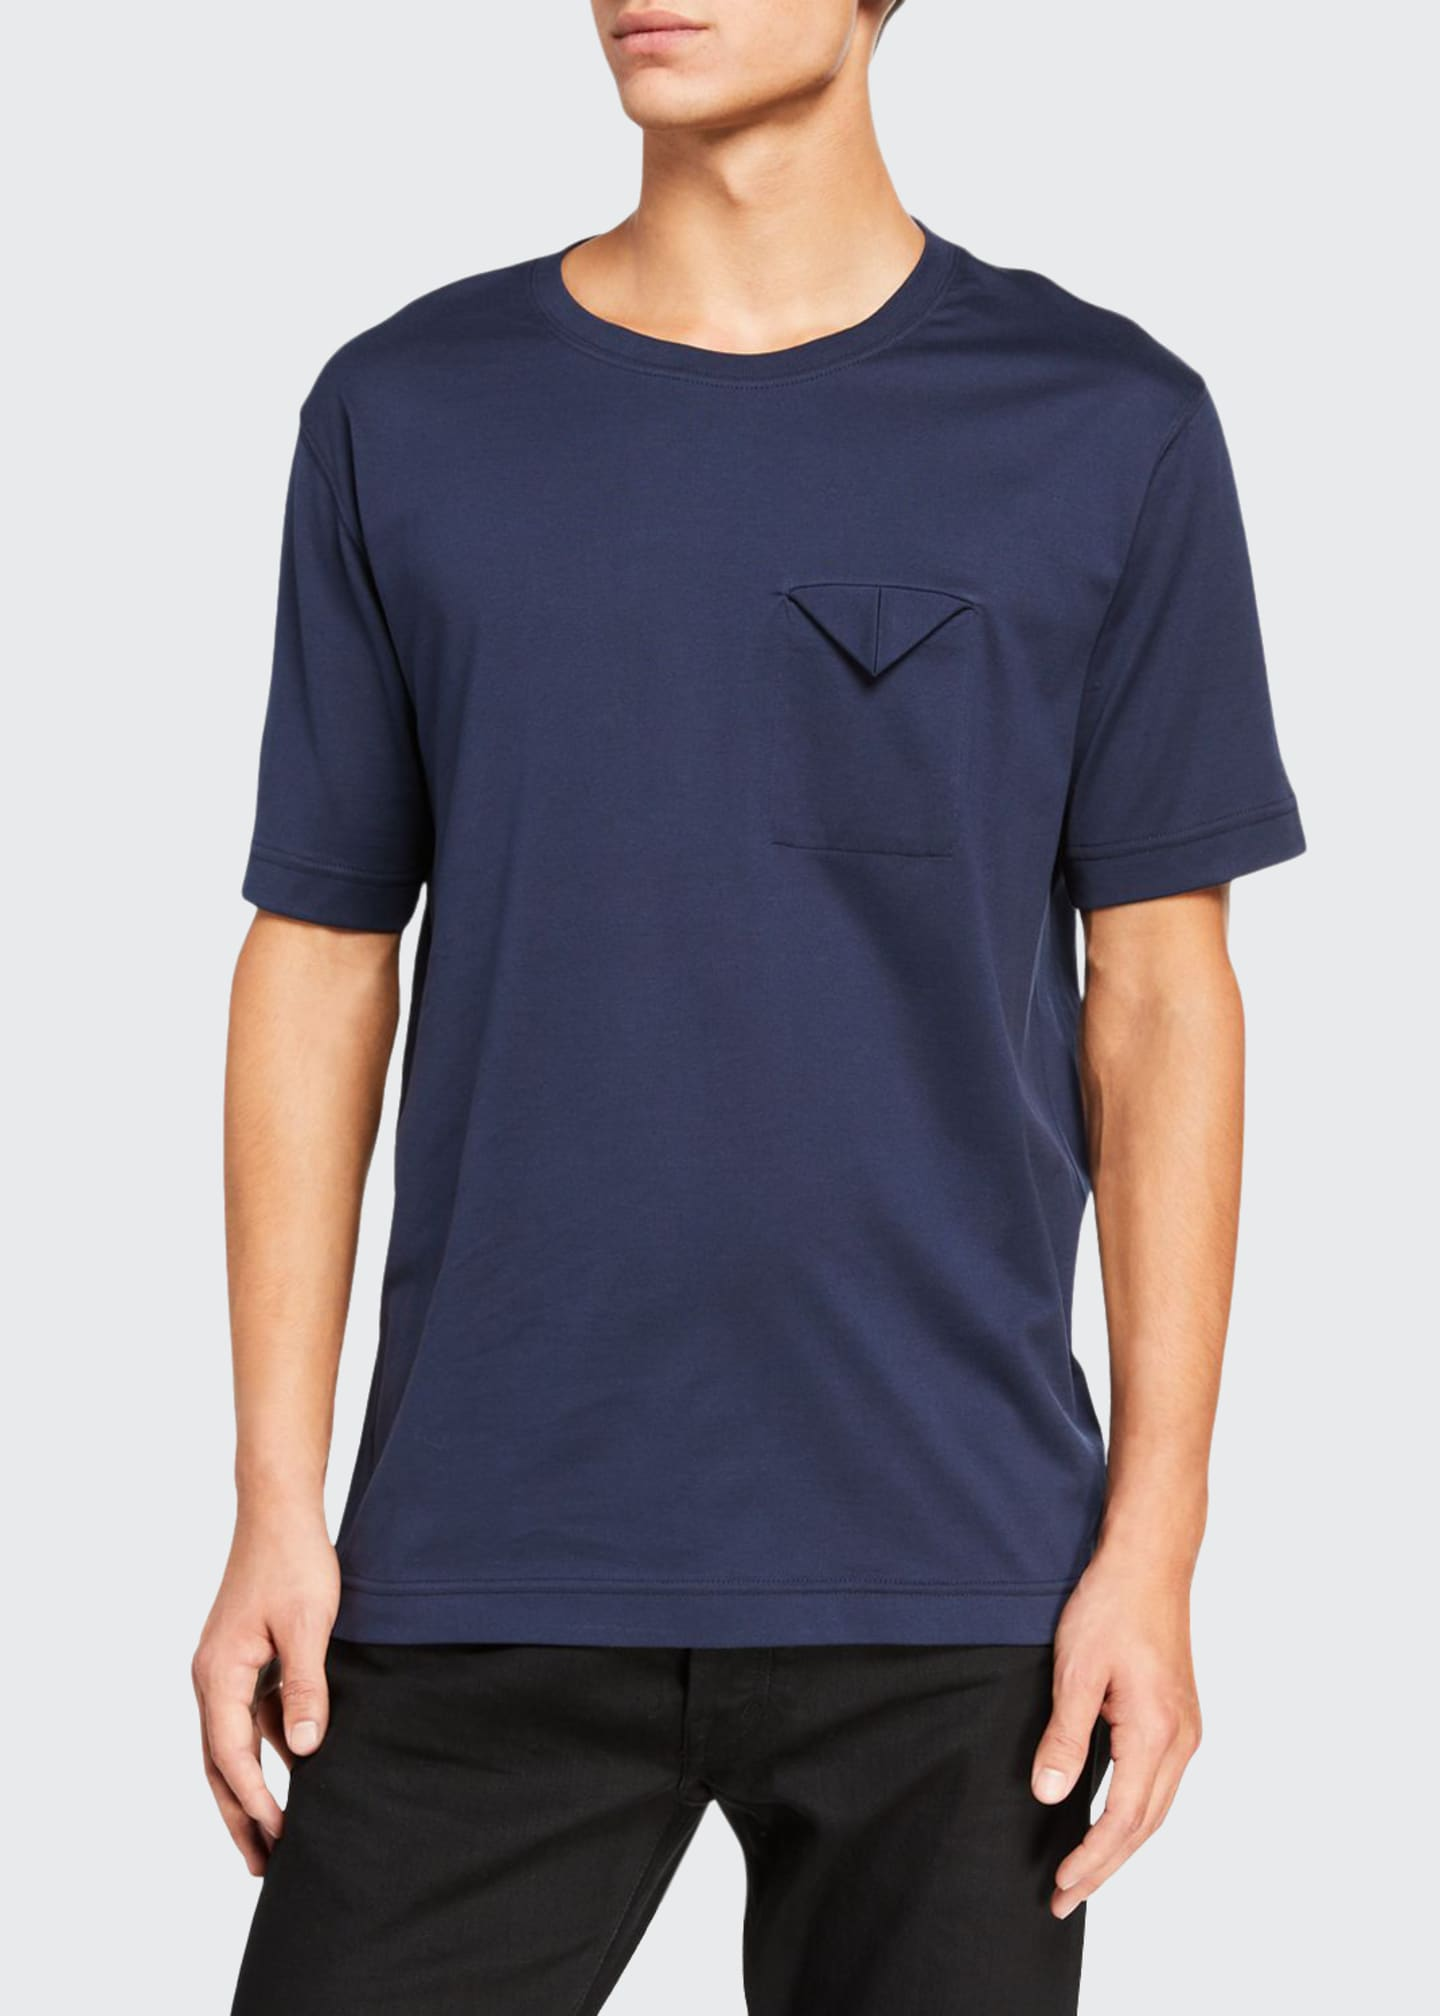 Bottega Veneta Men's Folded-Pocket Crewneck T-Shirt